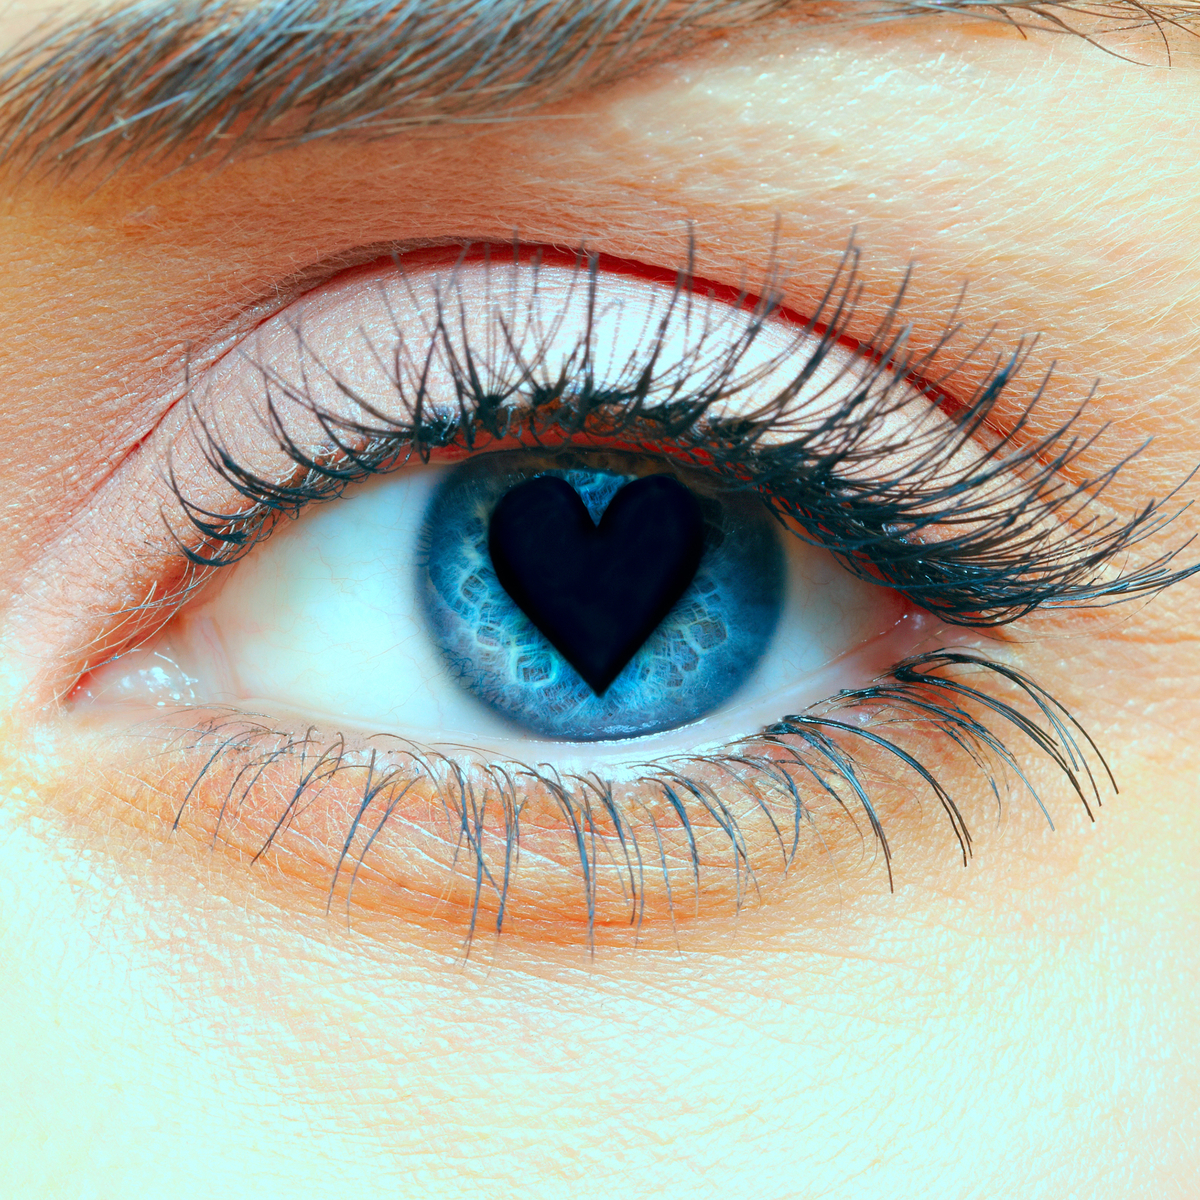 Old and tired looking eyes? Fall back in love with them